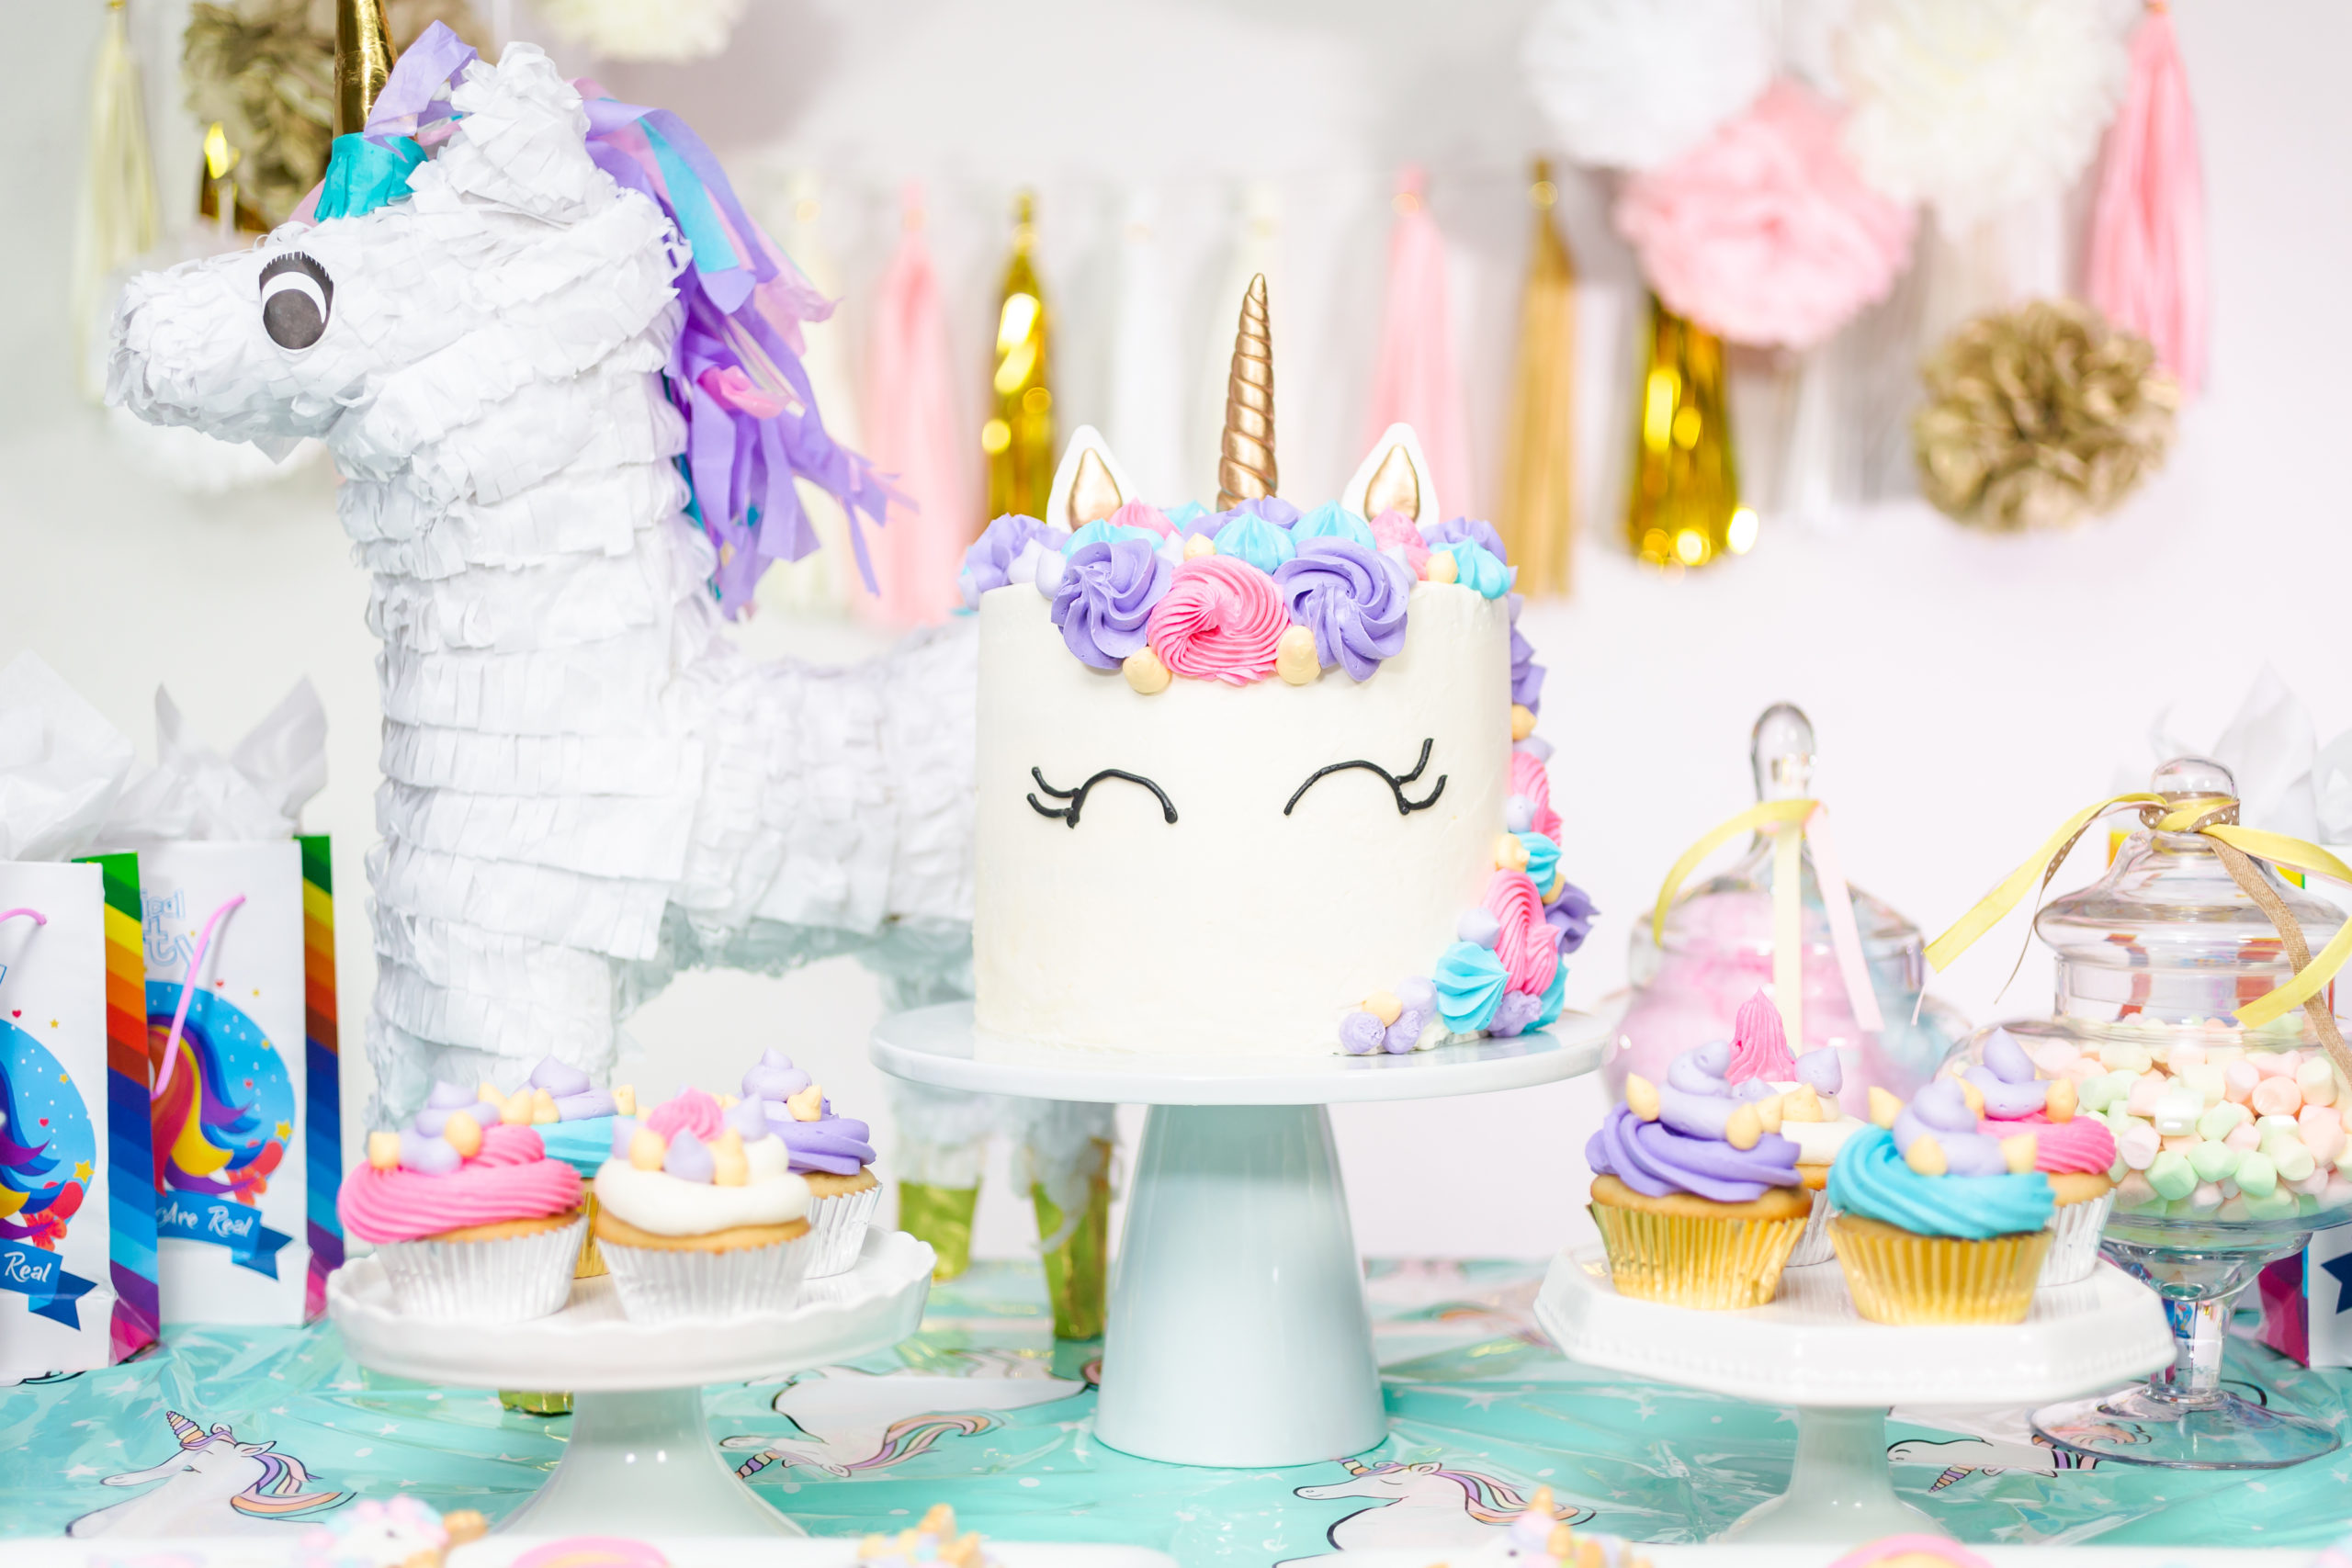 The Unicorn Birthday Party